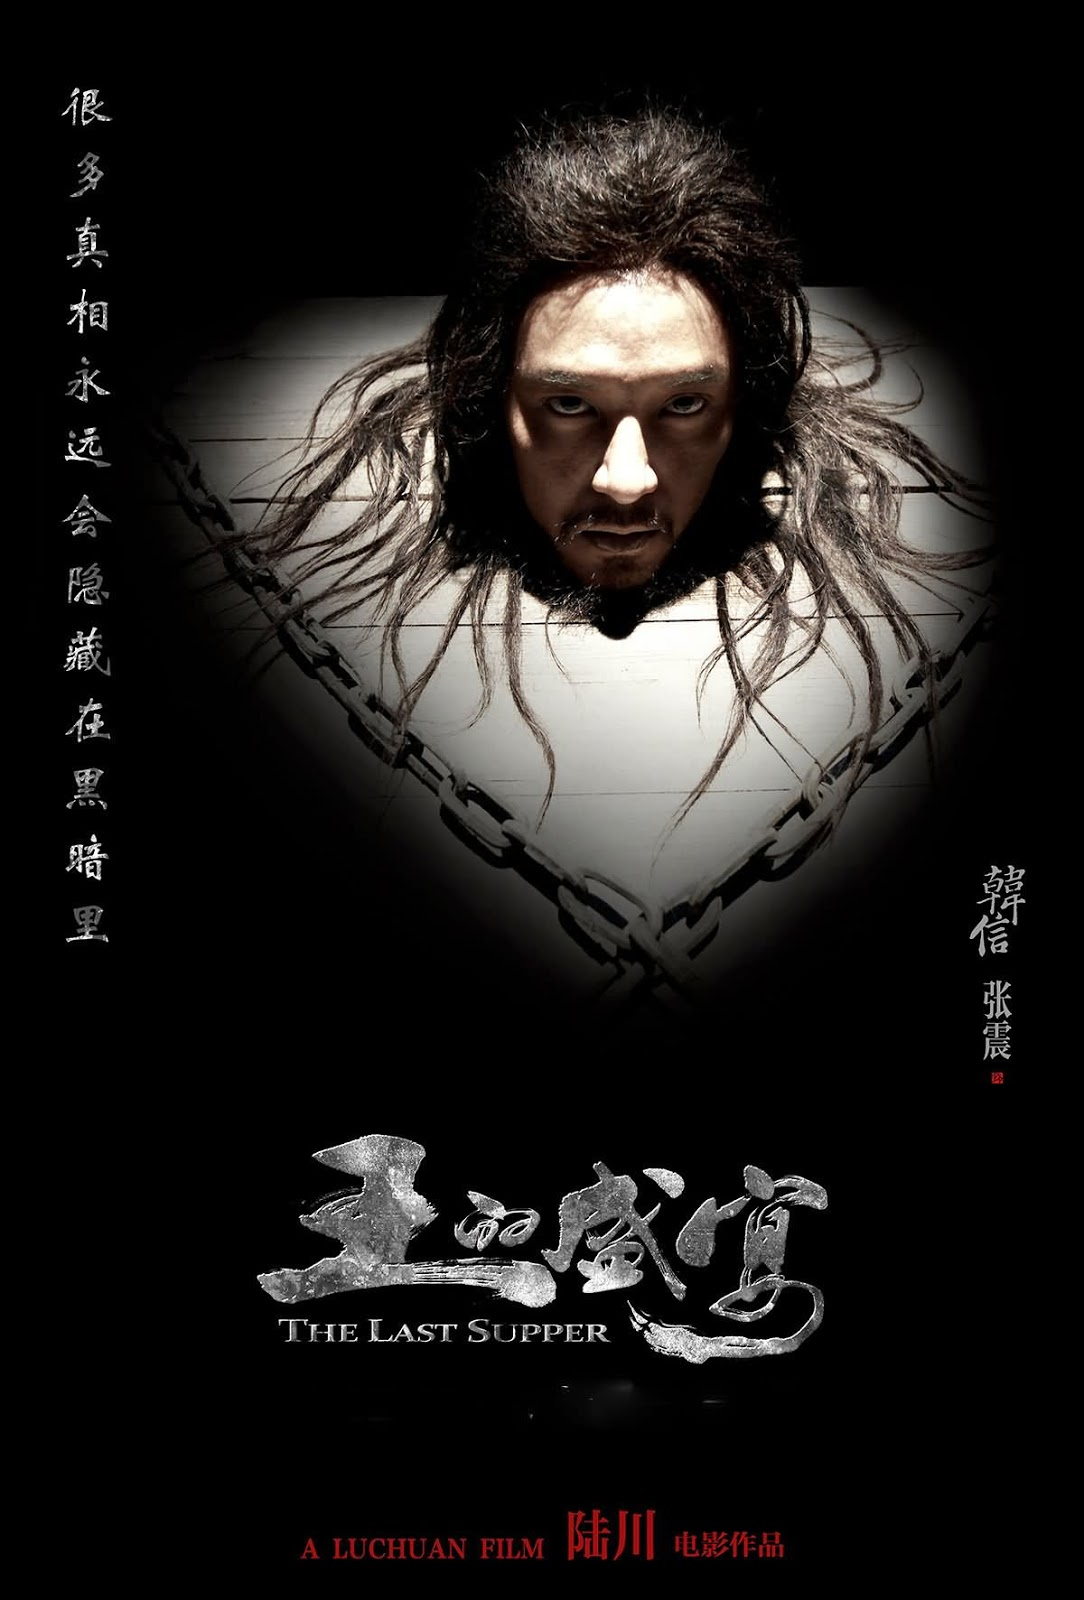 Chang Chen as Han Xin